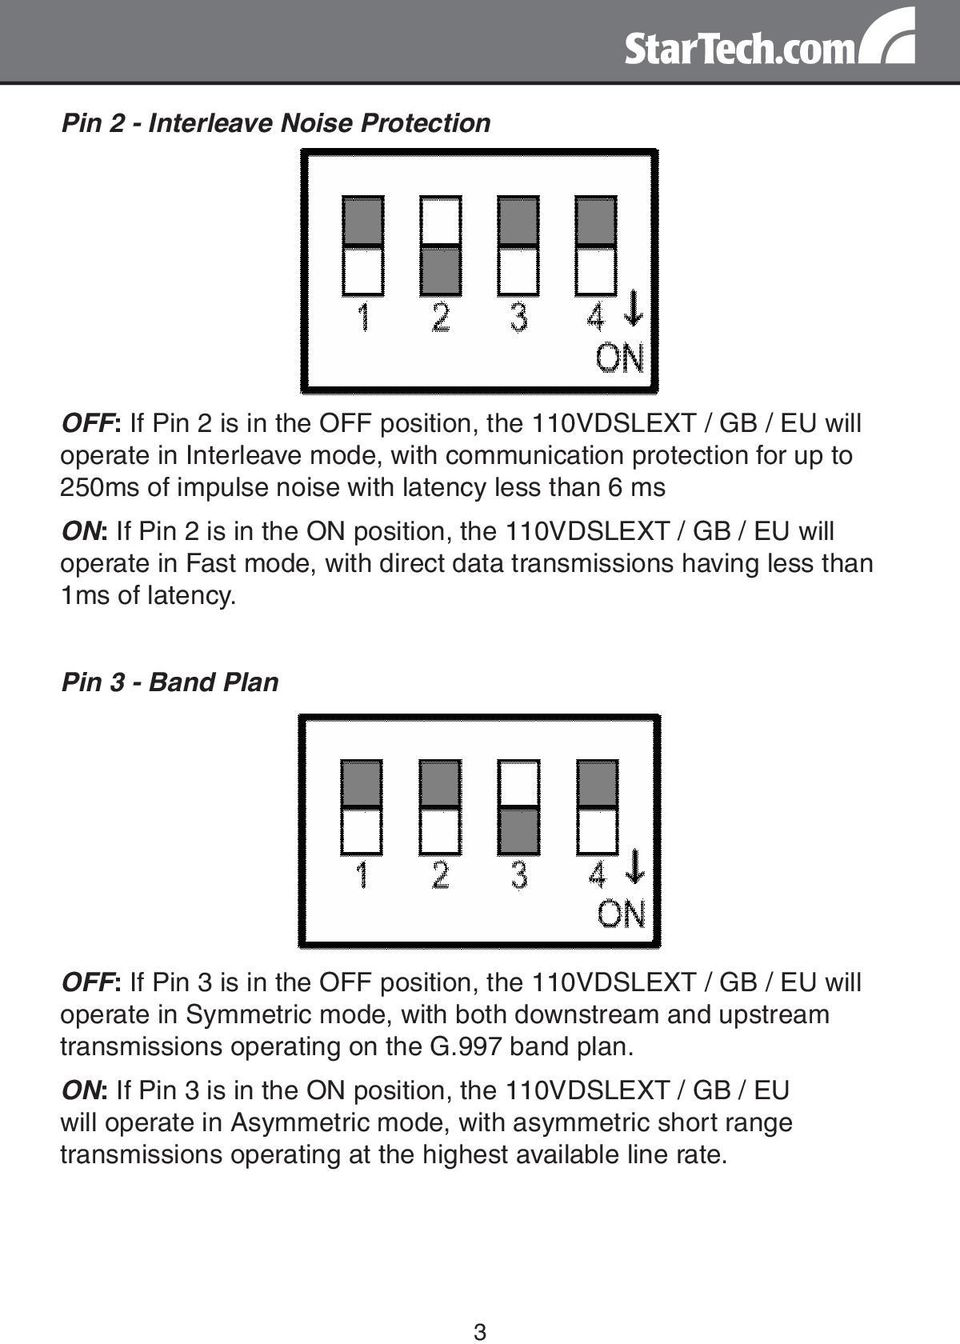 Pin 3 - Band Plan OFF: If Pin 3 is in the OFF position, the 110VDSLEXT / GB / EU will operate in Symmetric mode, with both downstream and upstream transmissions operating on the G.